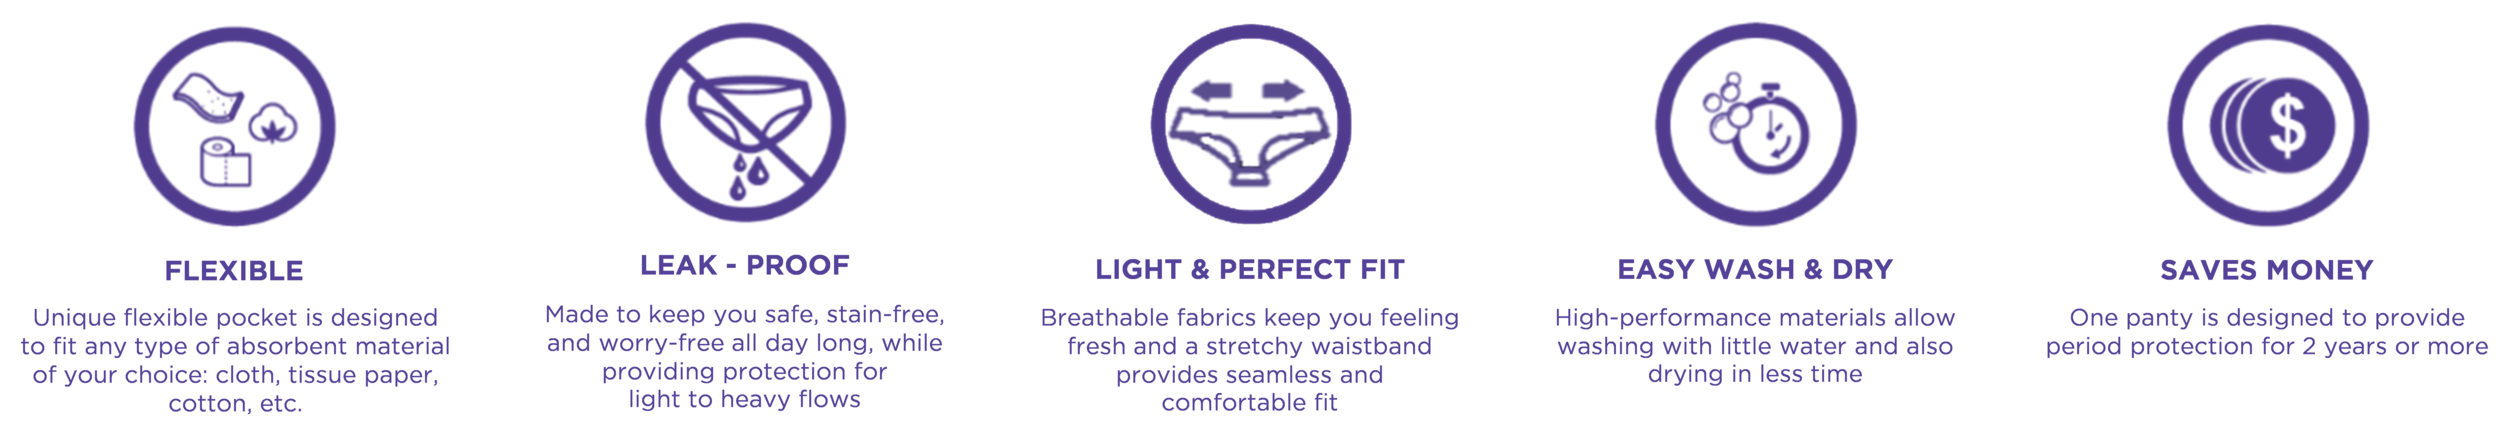 PeriodPanty - Flexible, Leak-proof, Light & Perfect Fit, Easy Wash & Dry, Saves Money.png